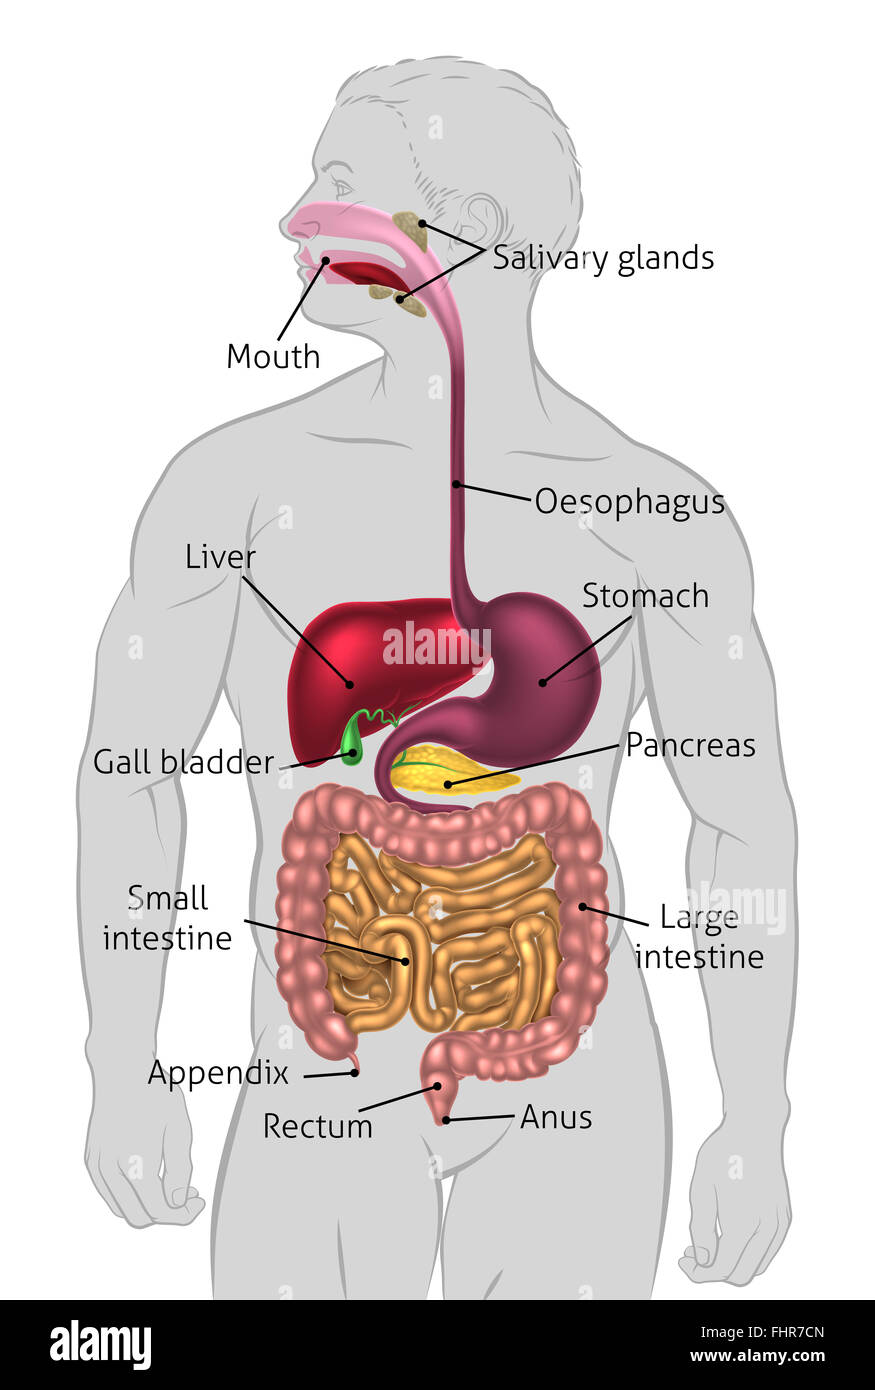 Alimentary Canal Human Imágenes De Stock & Alimentary Canal Human ...